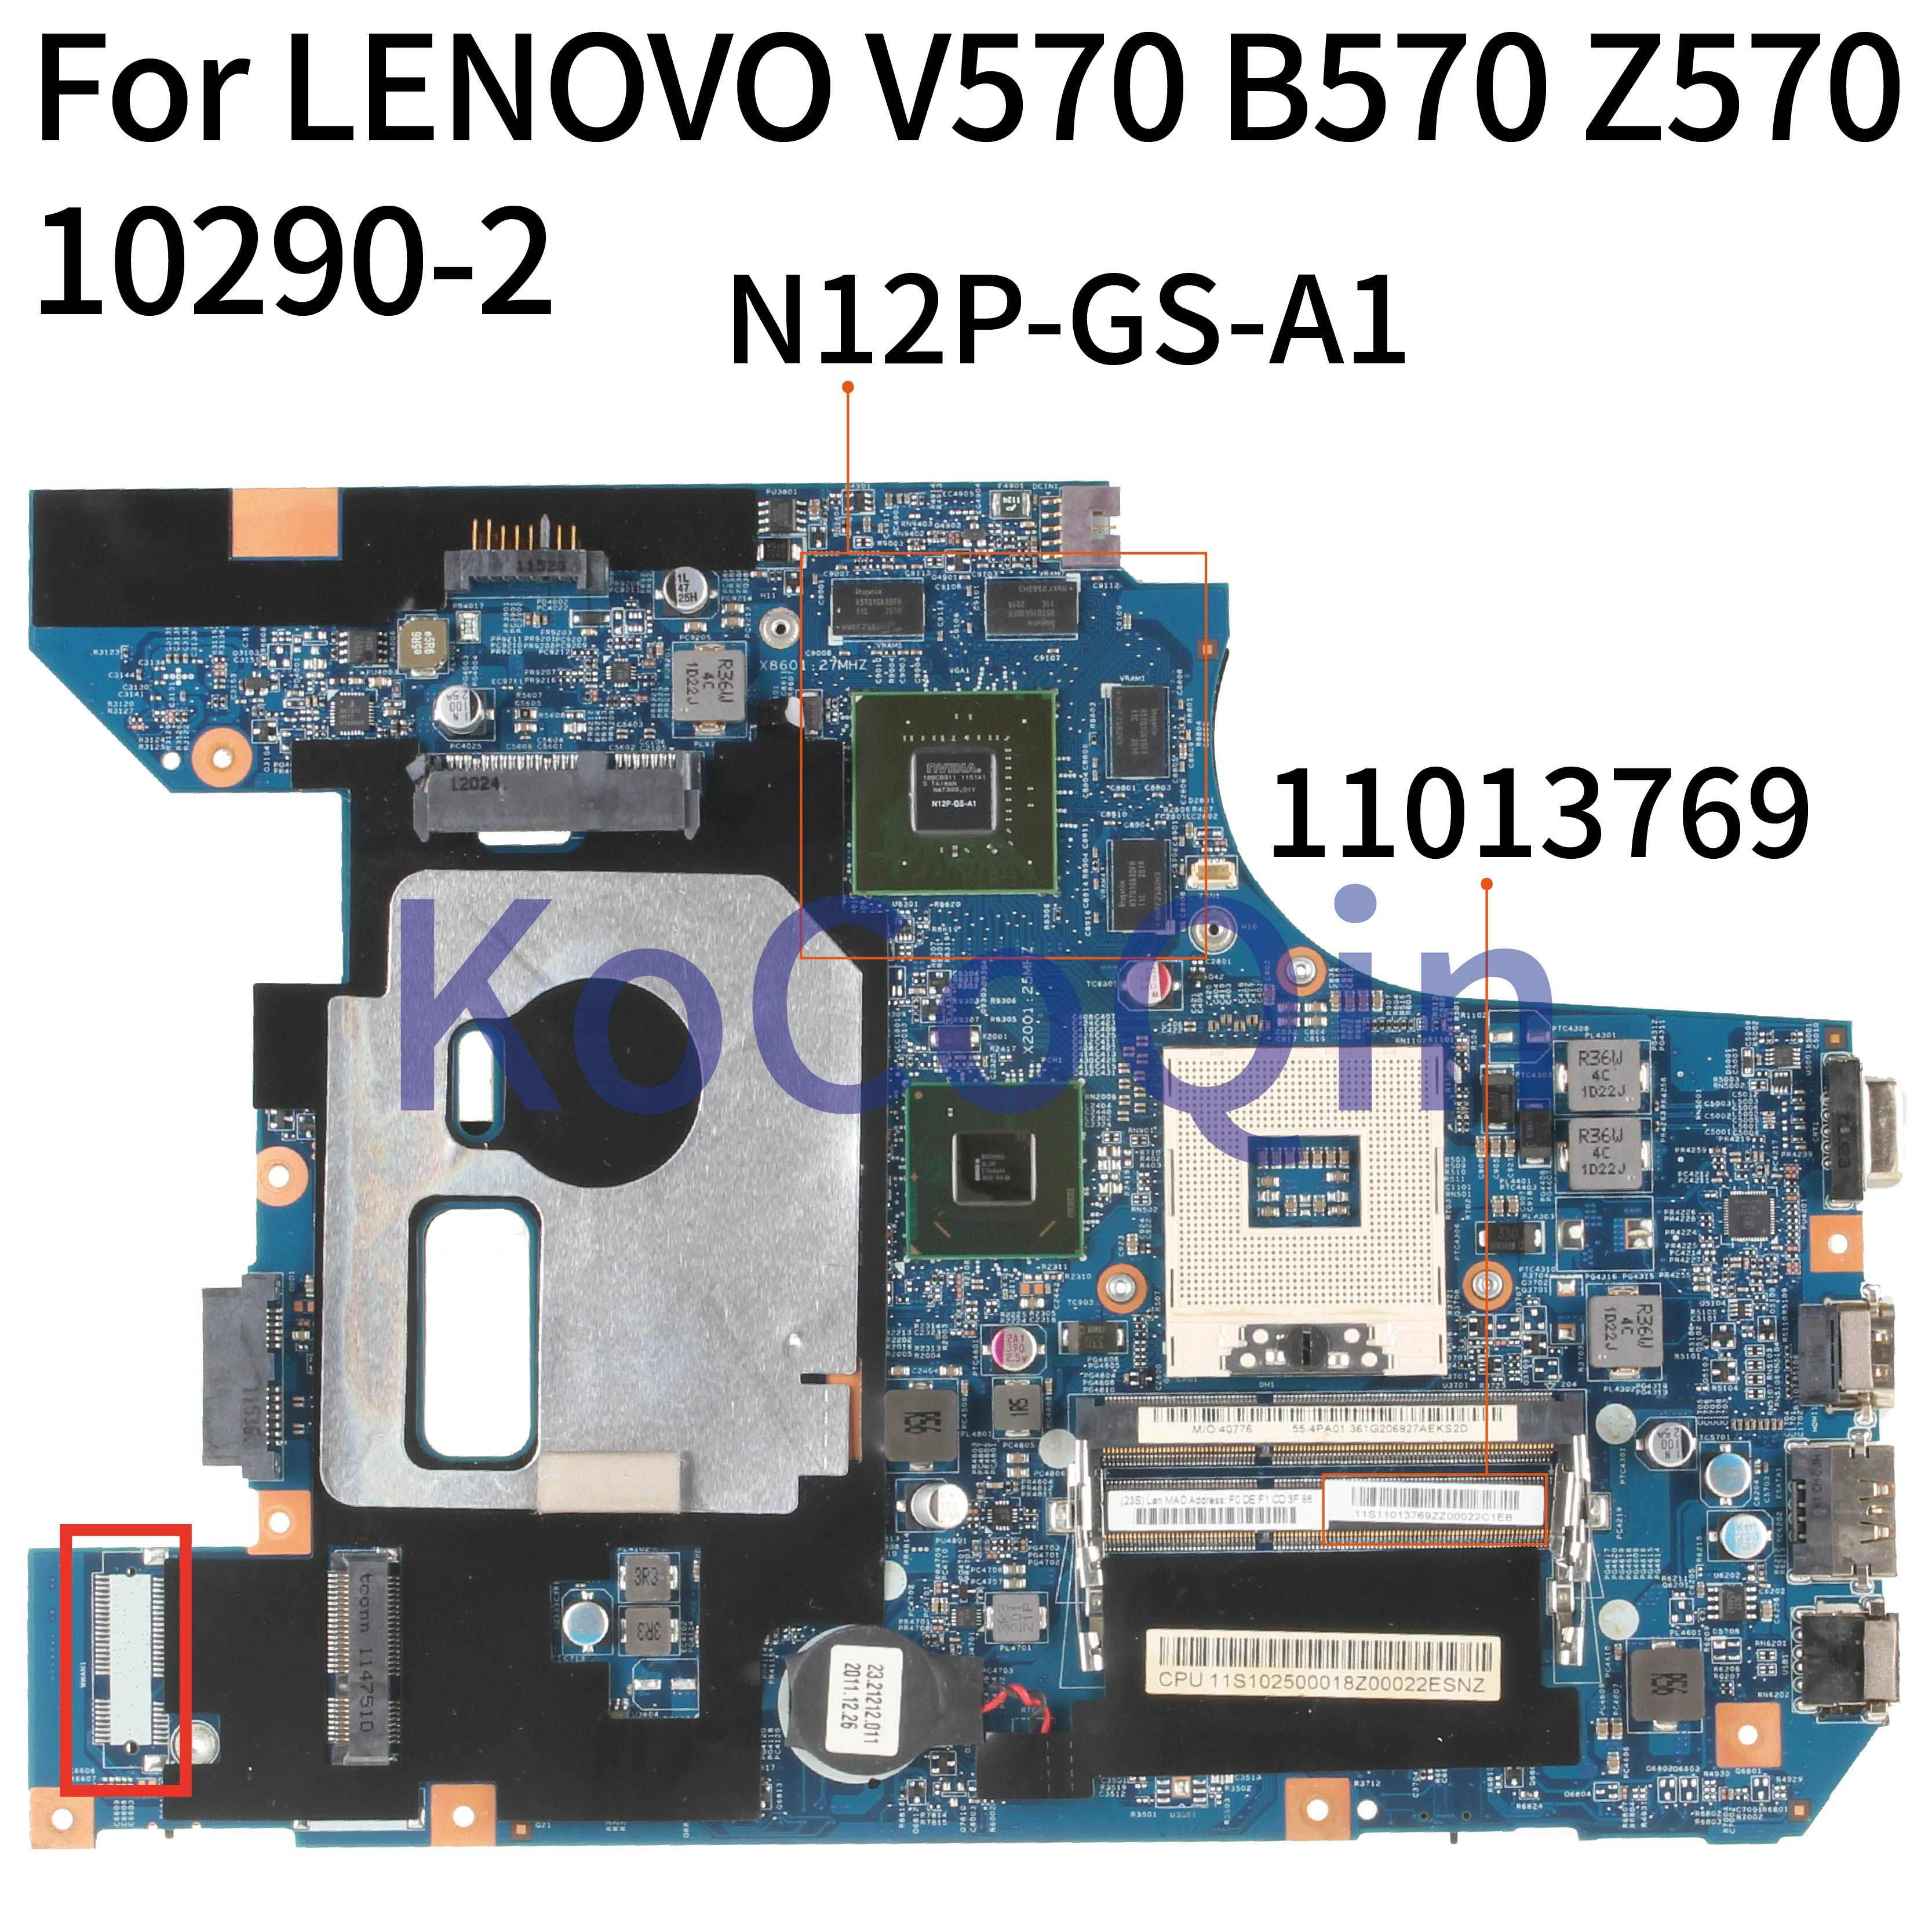 KoCoQin Laptop <font><b>motherboard</b></font> For <font><b>LENOVO</b></font> <font><b>V570</b></font> B570 Z570 GT540M 11013769 Mainboard 10290-2 48.4PA01.021 HM65 N12P-GS-A1 image